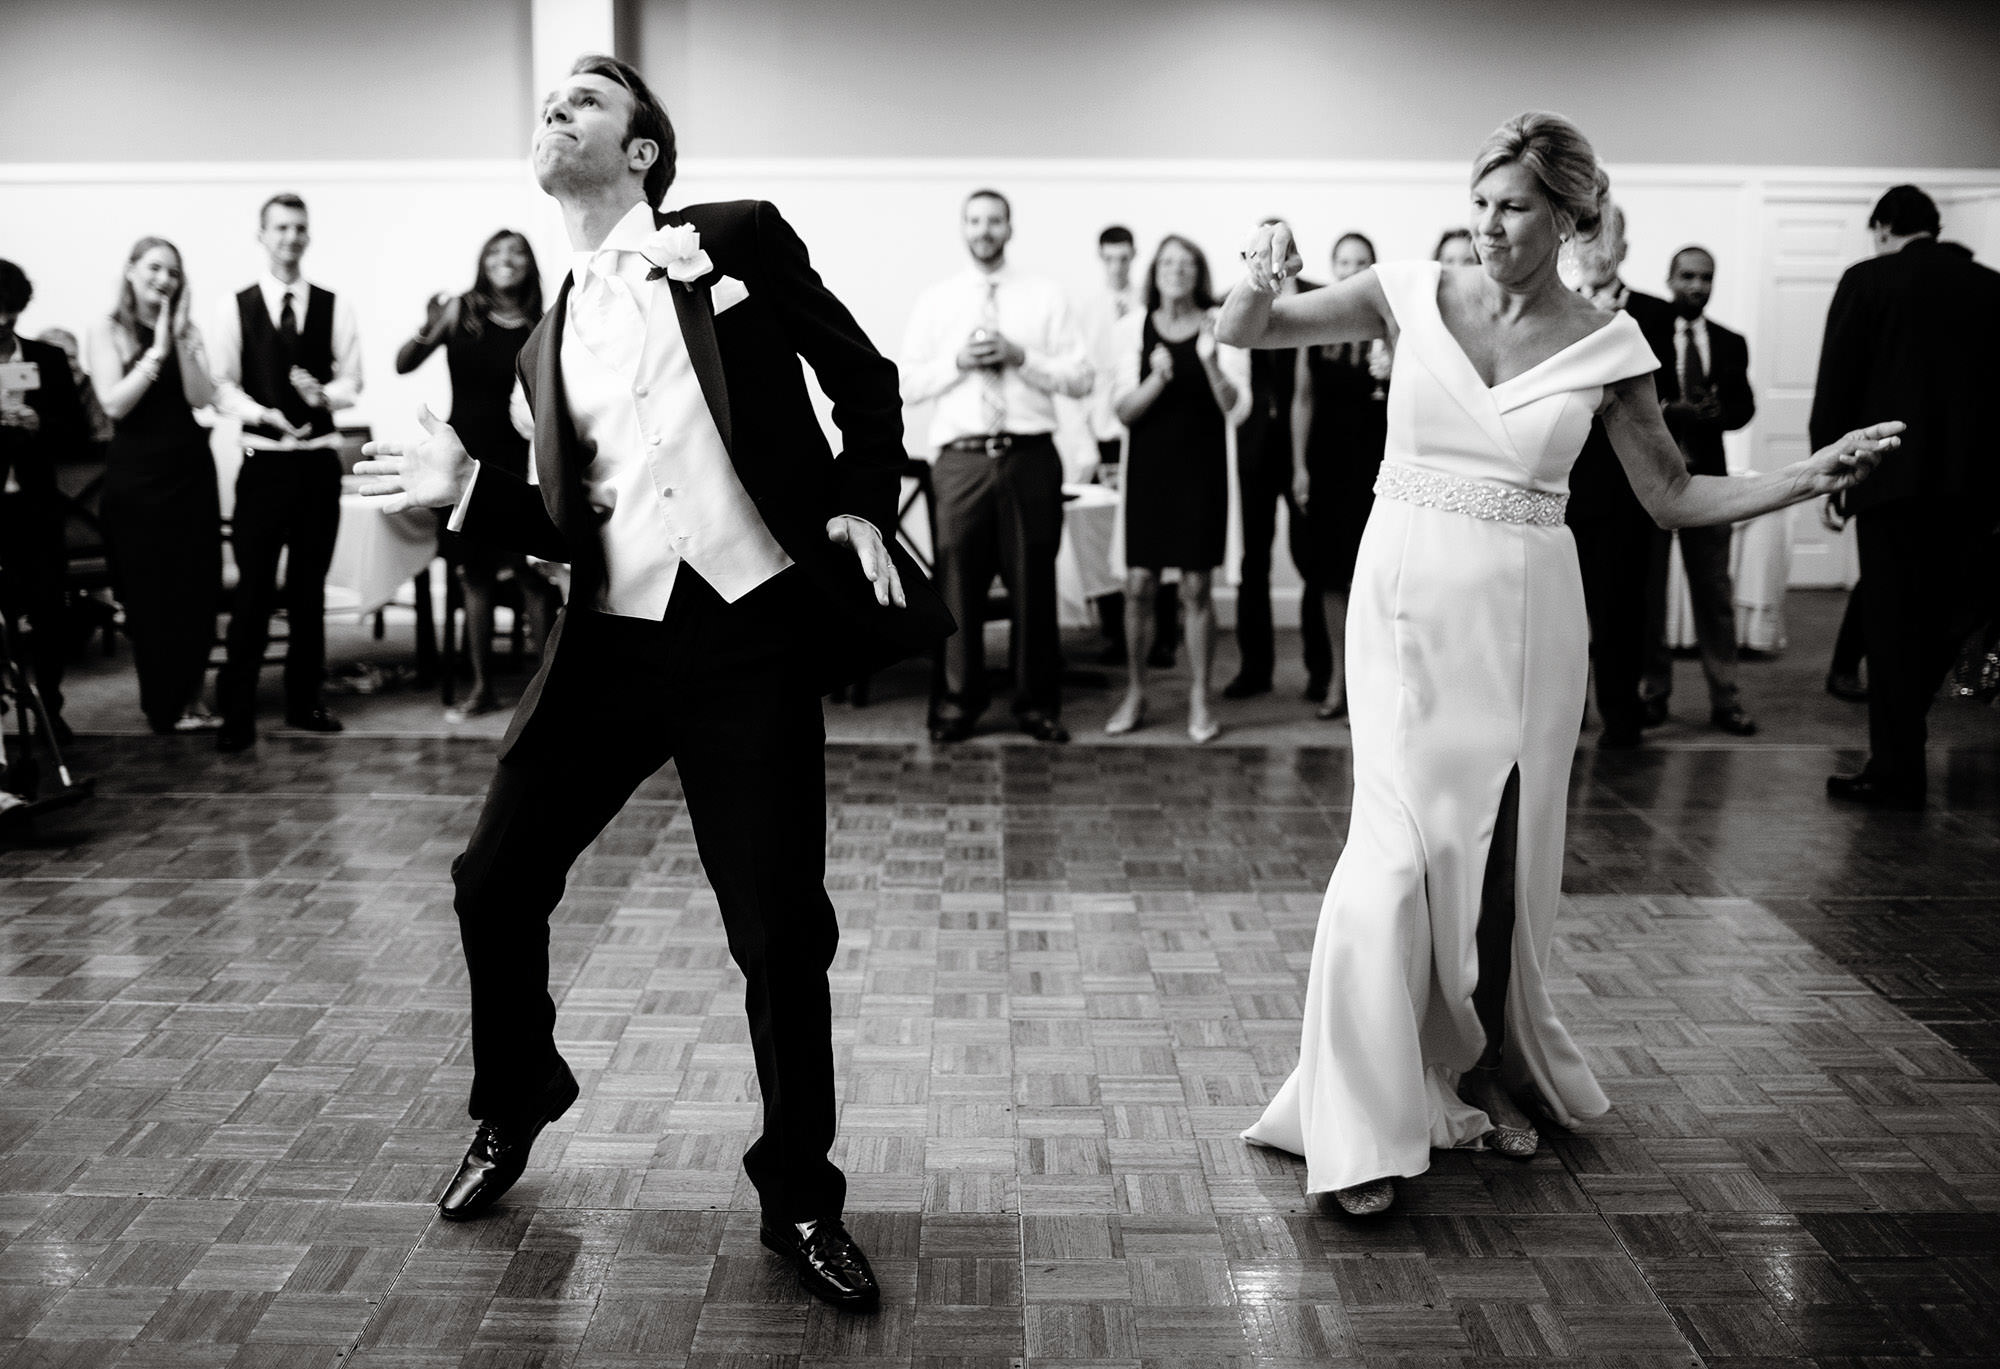 The groom dances with his mother during the White Cliffs Country Club wedding reception.